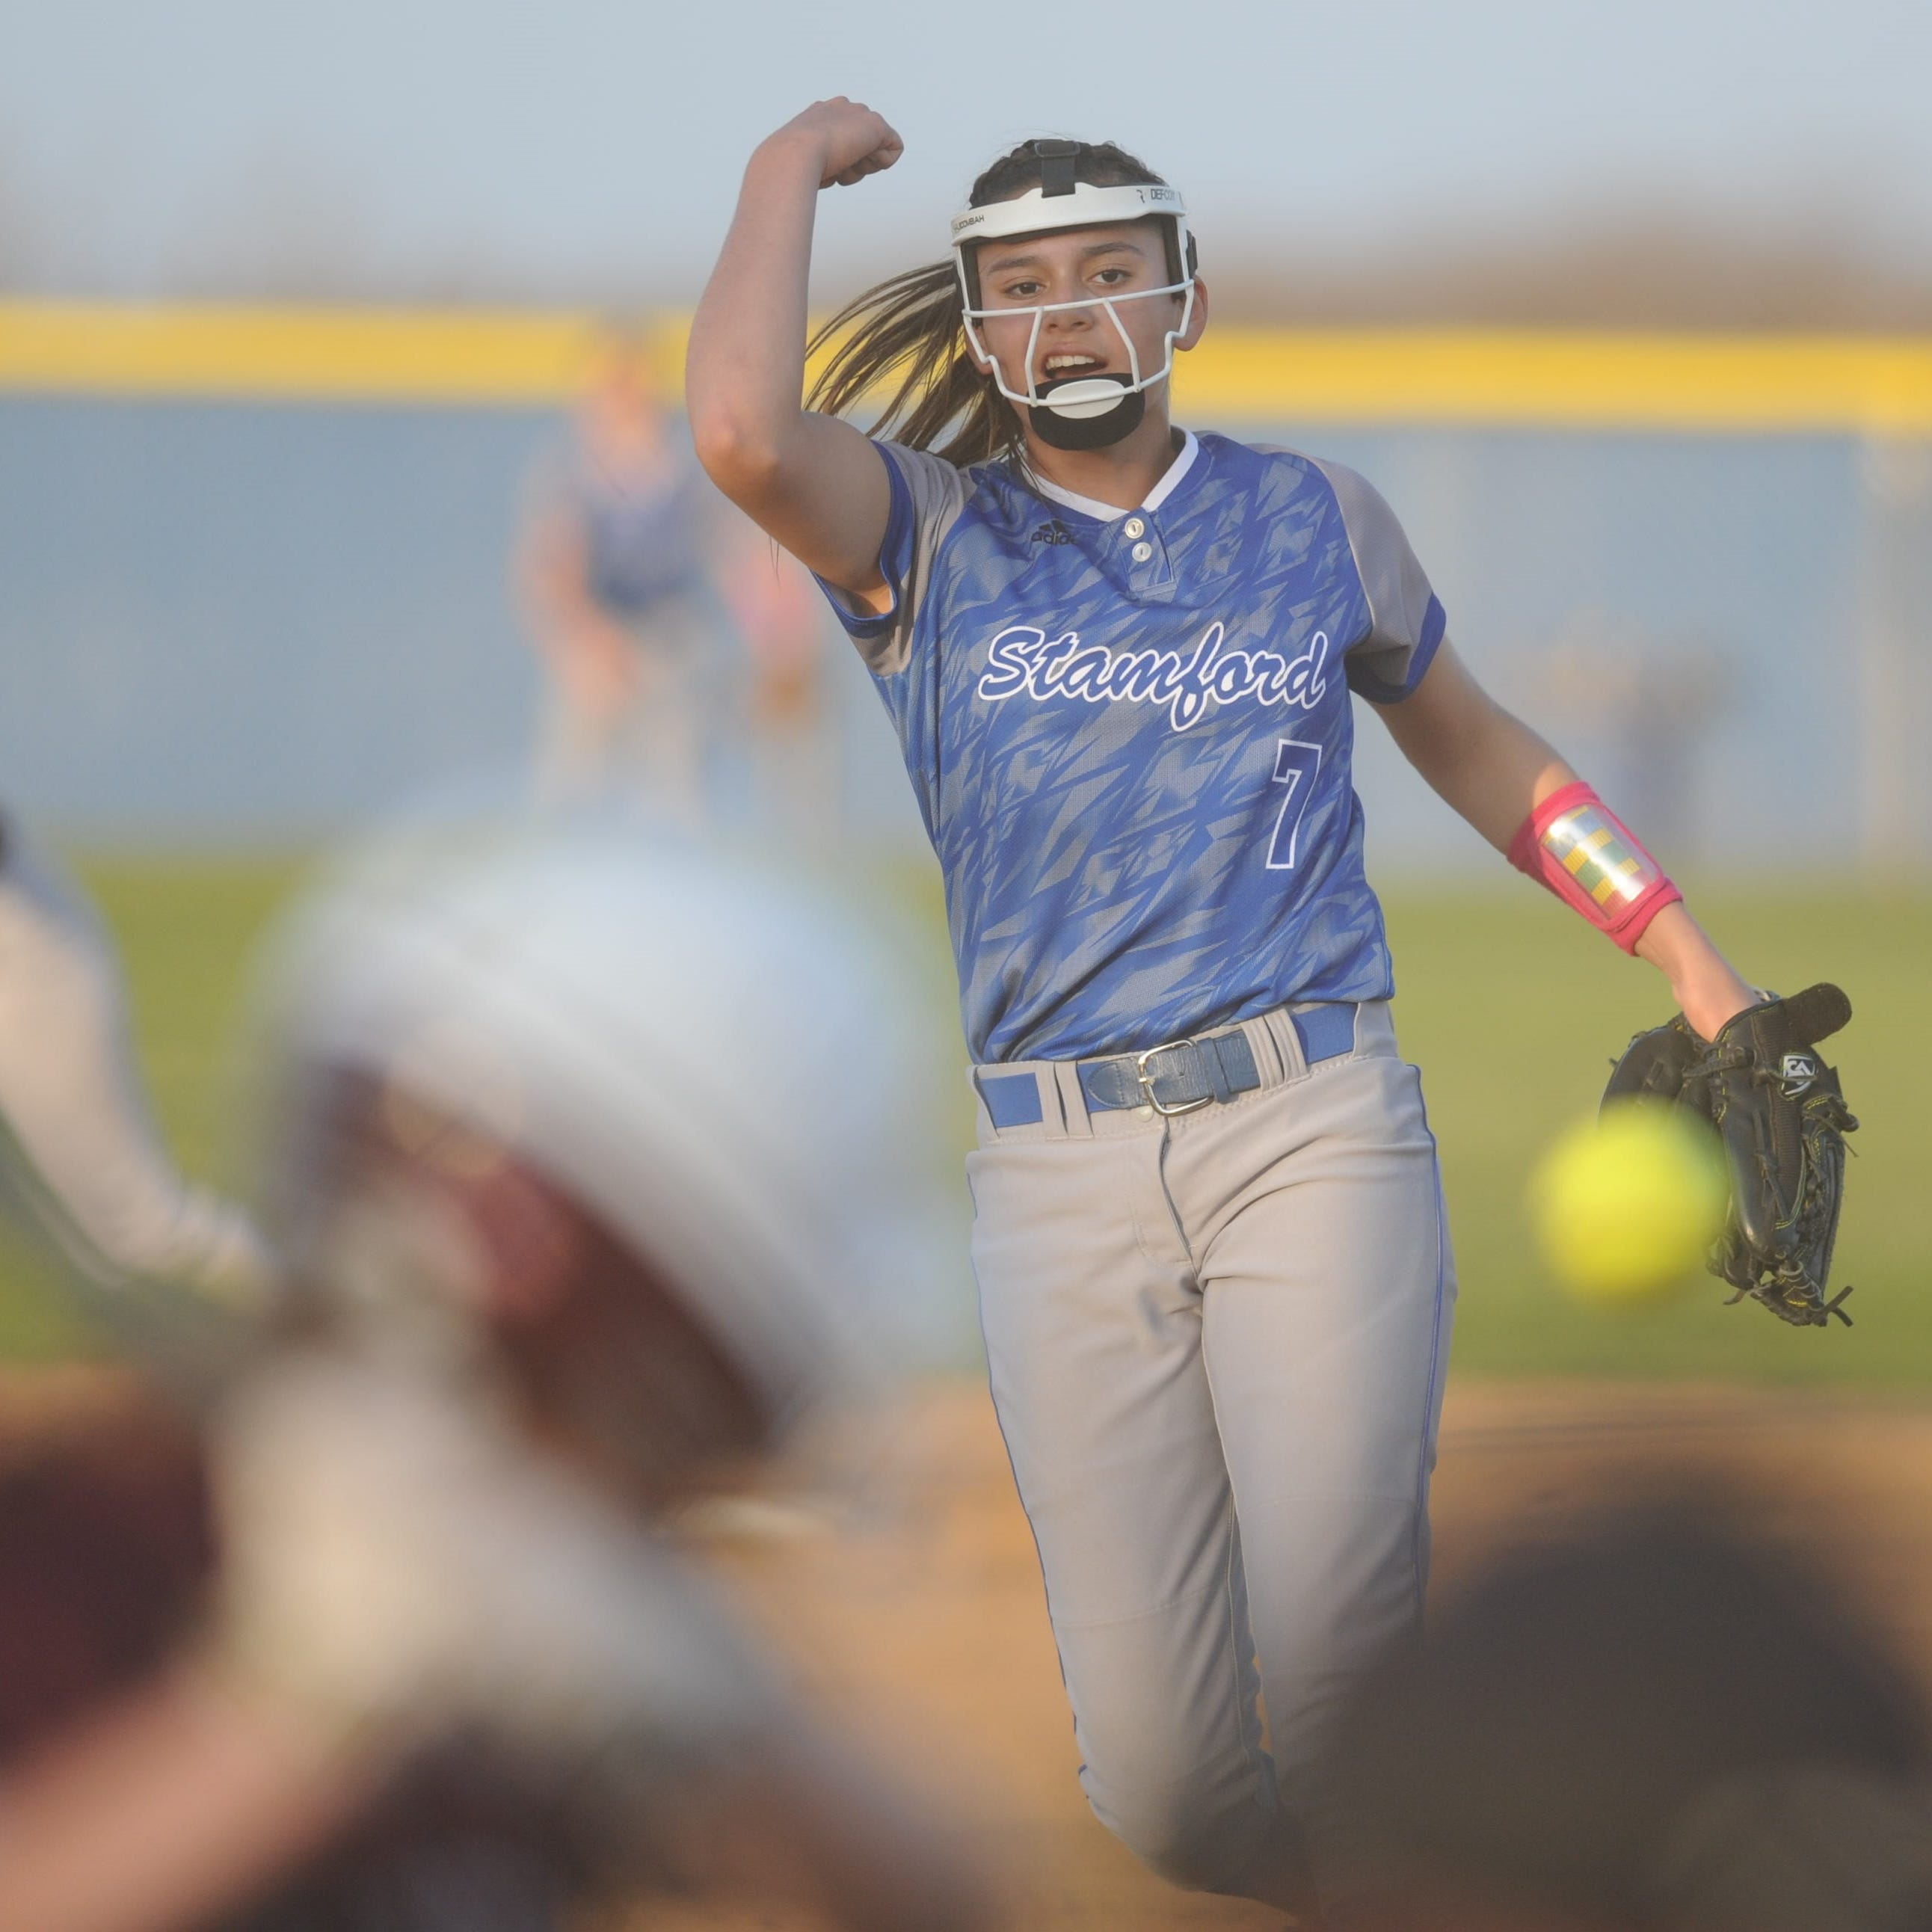 Big Country Player of the Week: Stamford's Citlaly Gutierrez helps team win district title